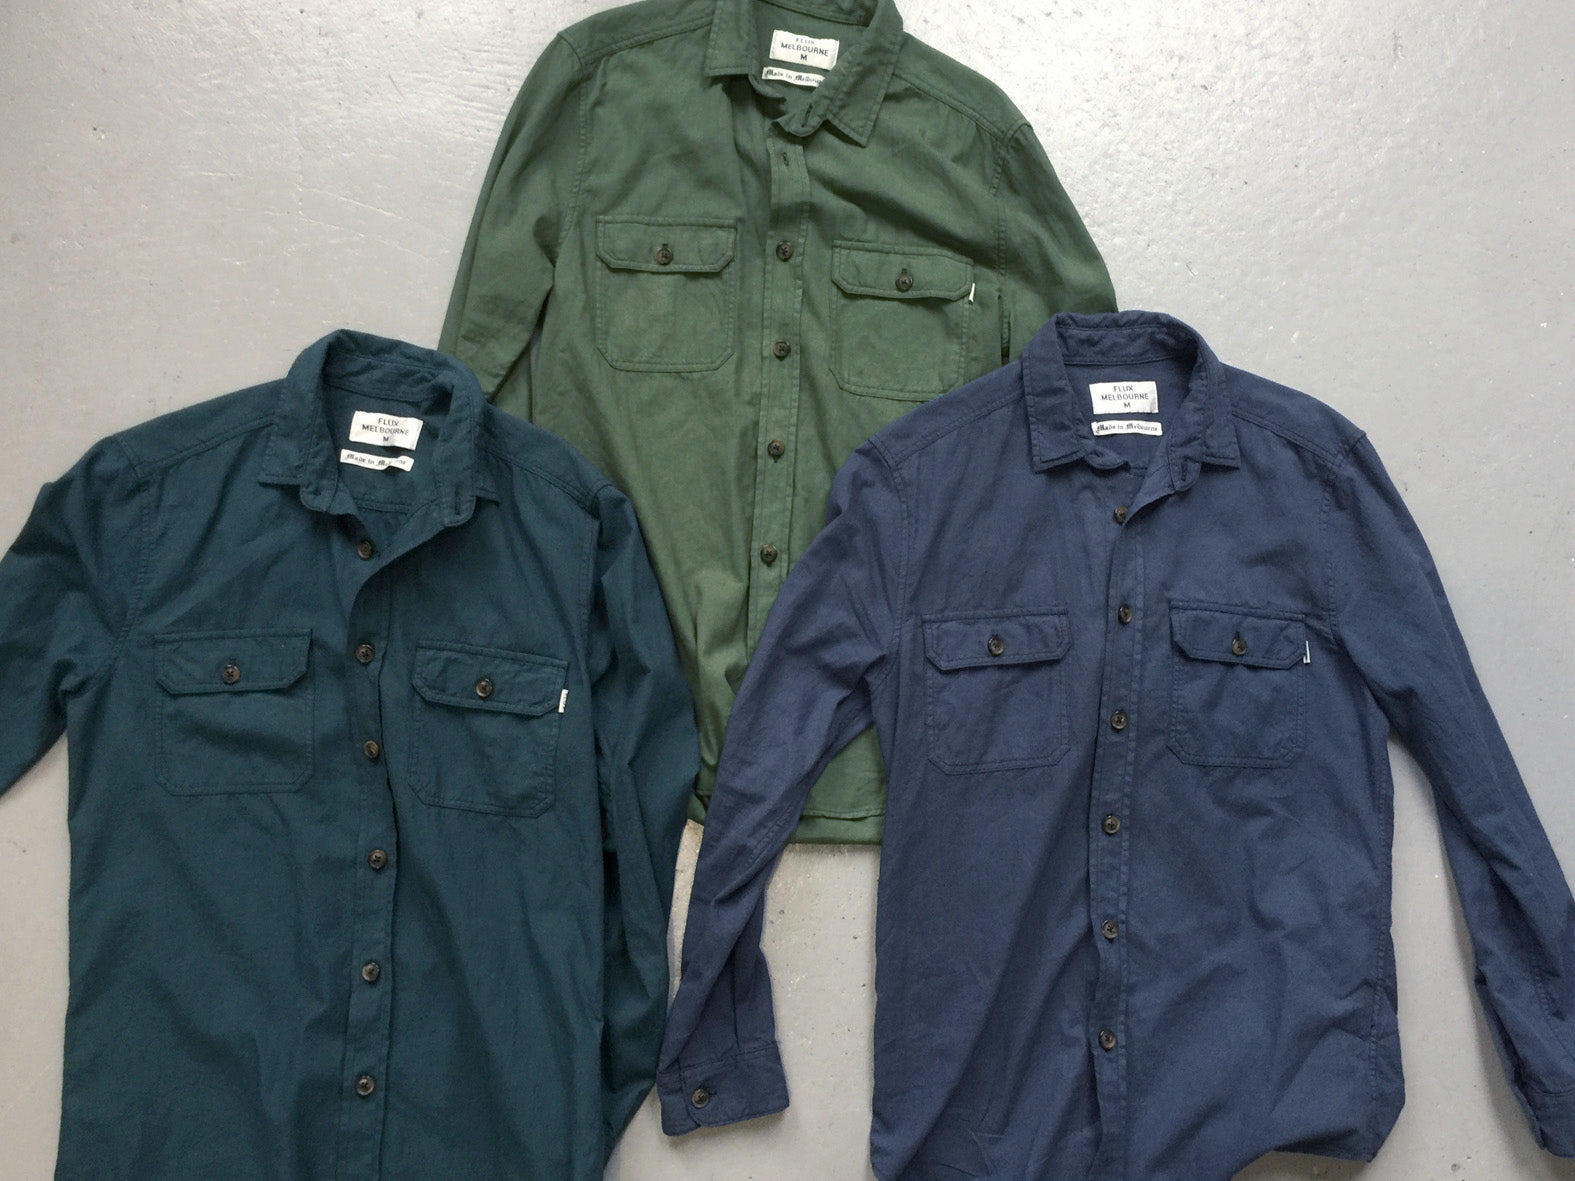 THE SMITH. WORK SHIRT. FOREST